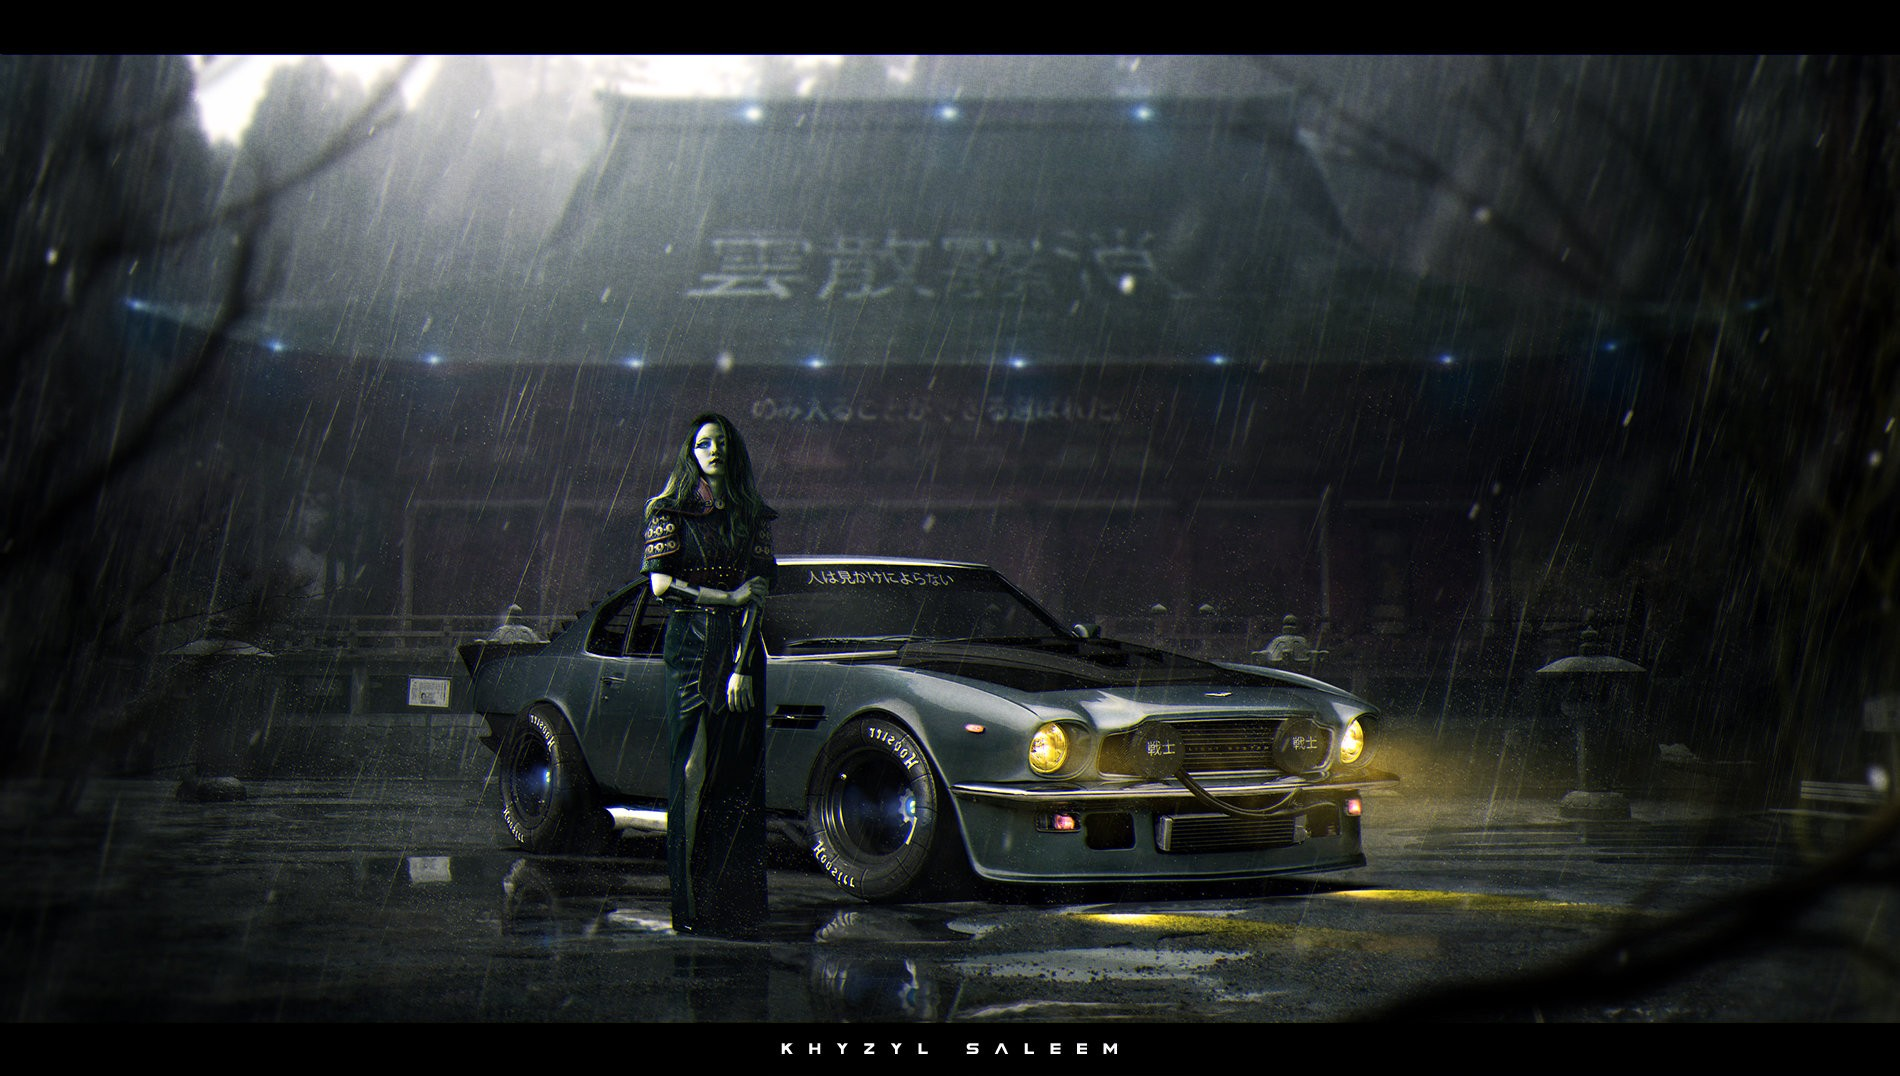 Police Car Wallpaper Mobile Car Stance Khyzylsaleem Ford Mustang Futuristic Rain